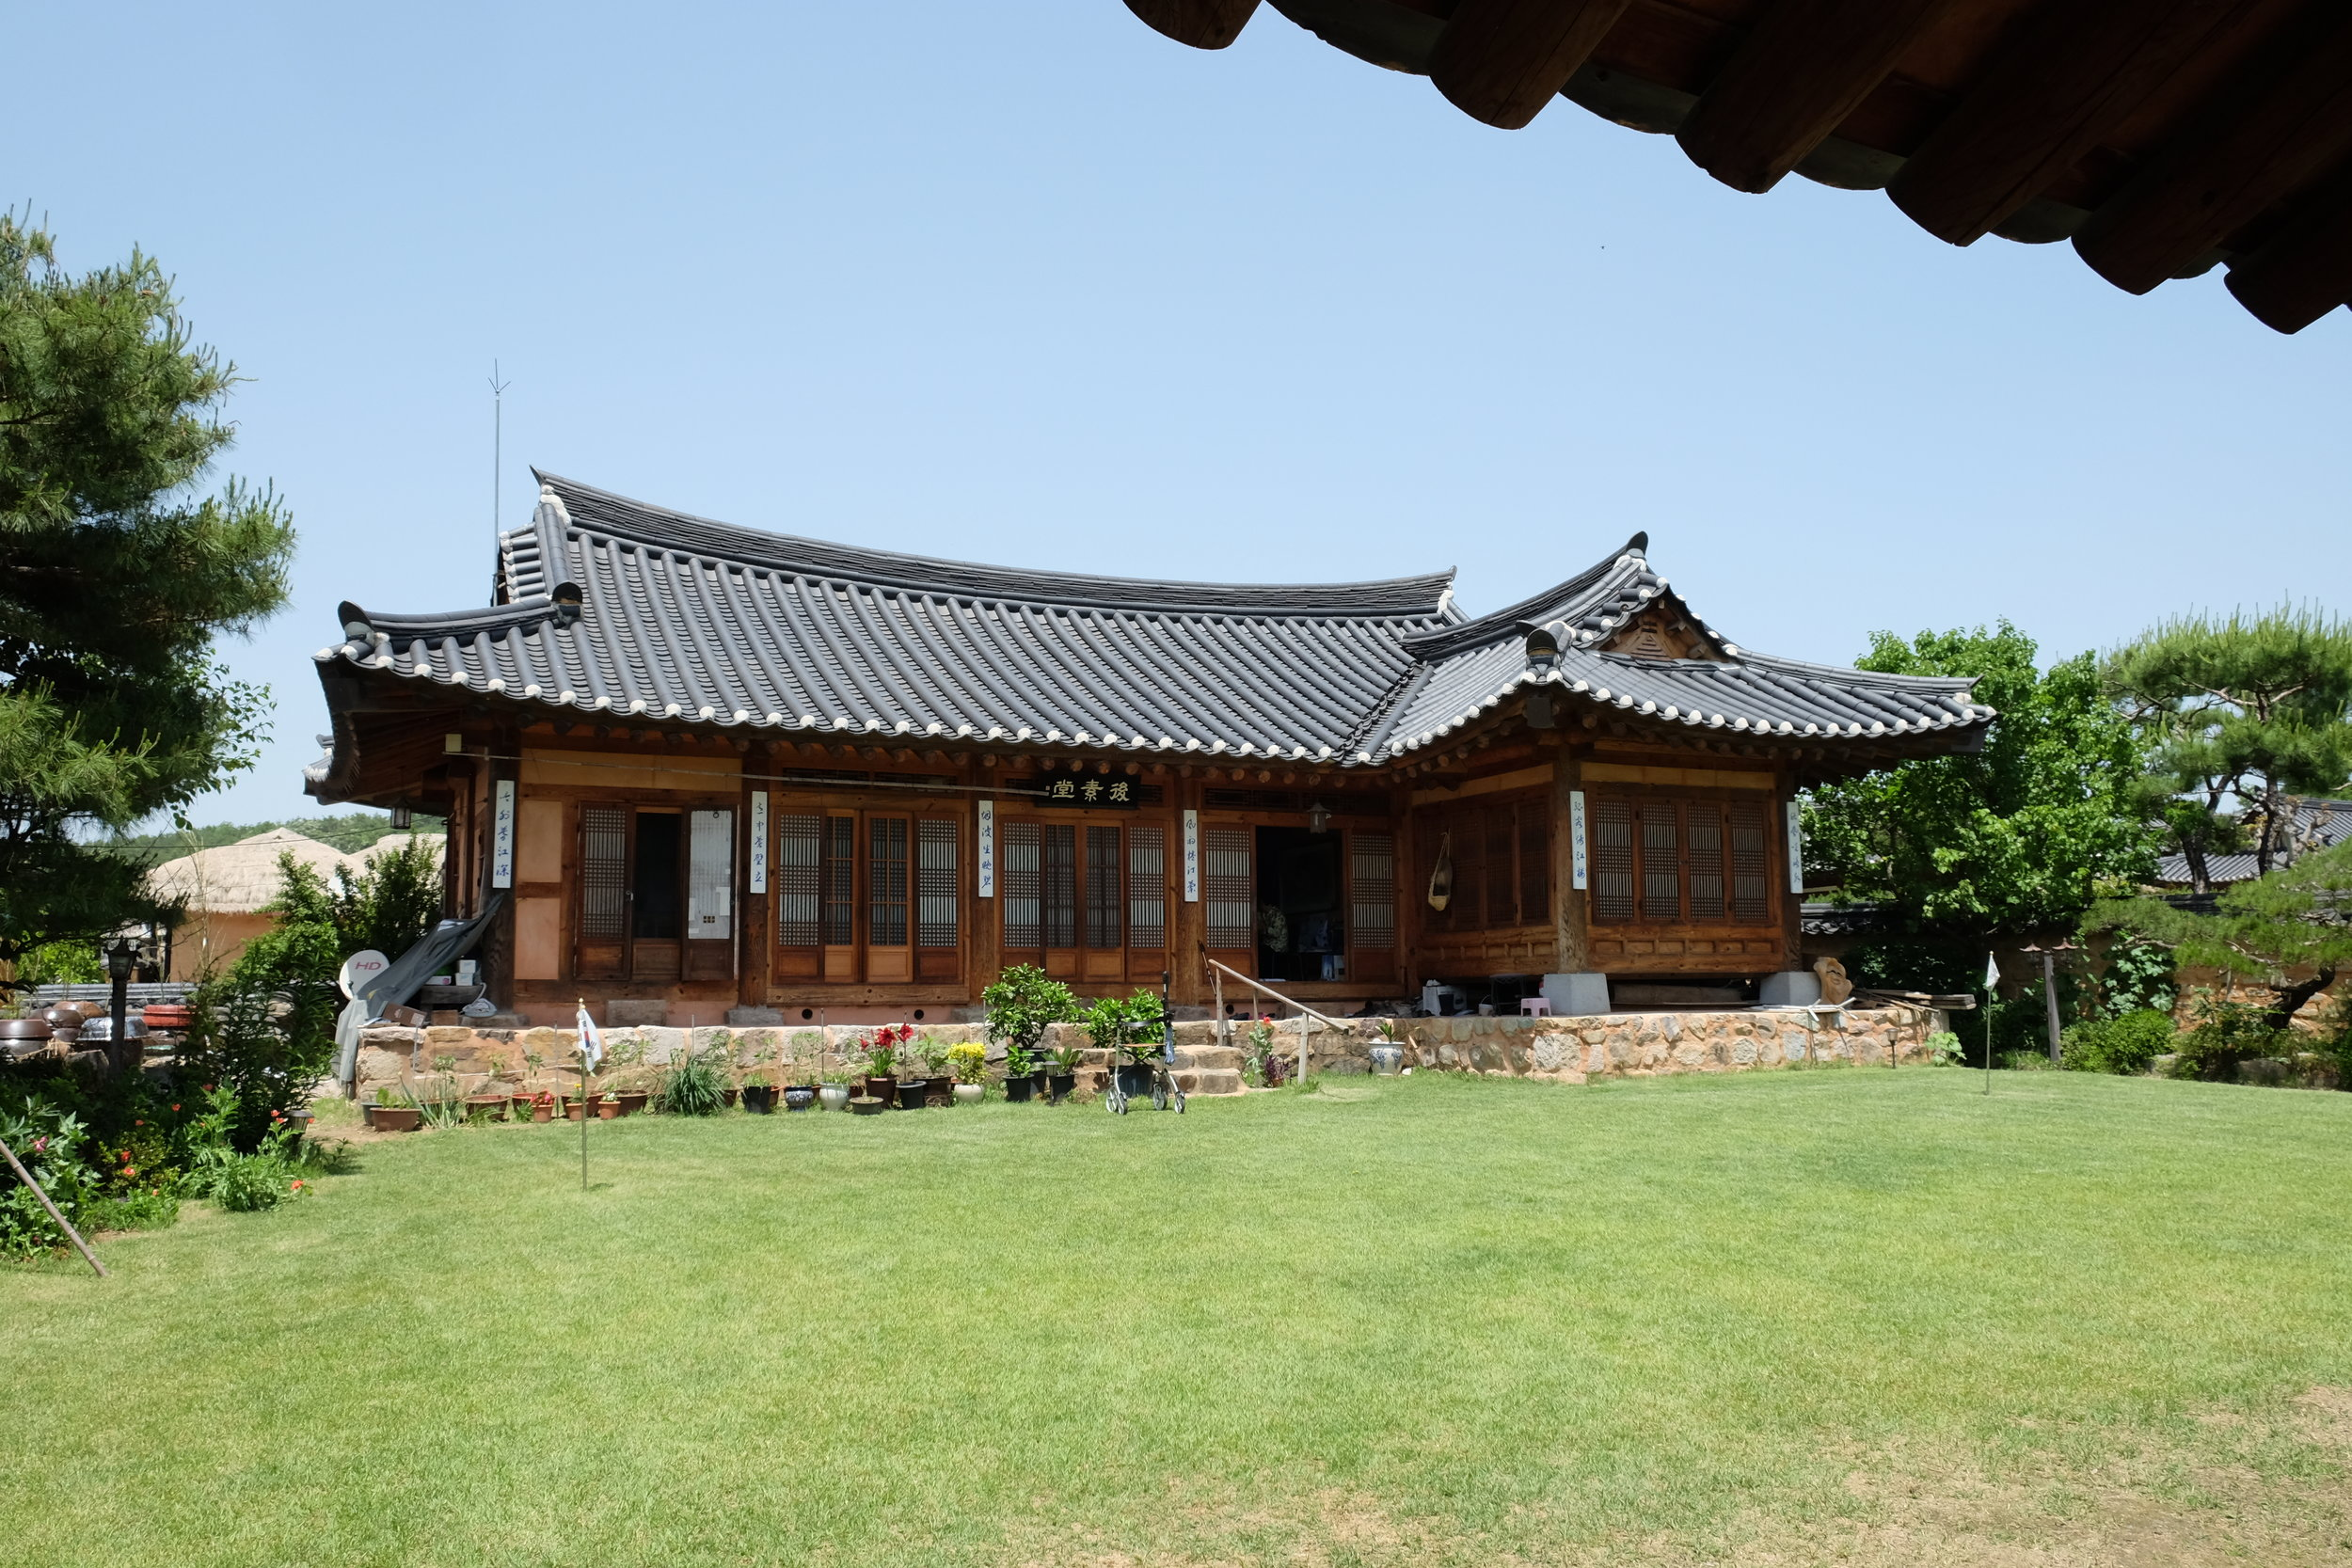 One of the houses that the Ryu family still occupies today.